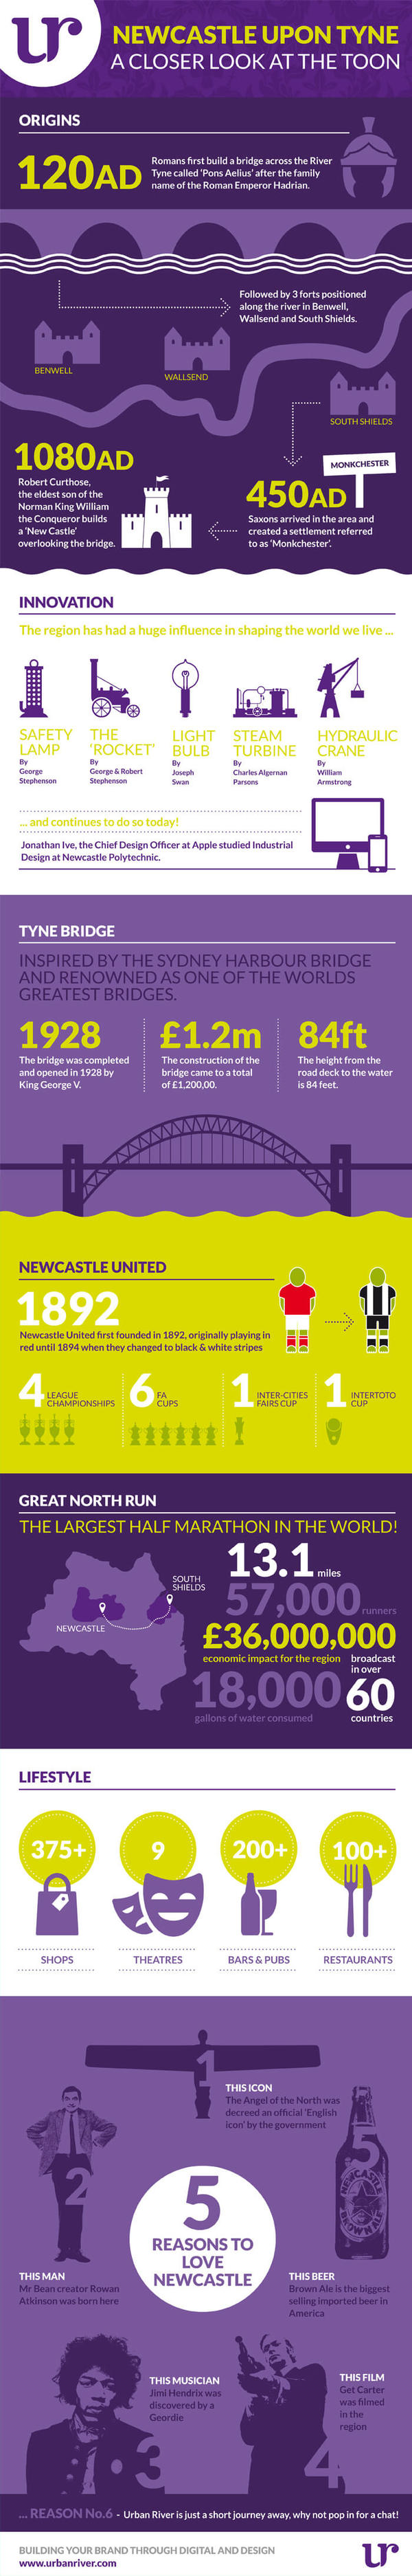 Newcastle Upon Tyne - A Closer Look at the Toon